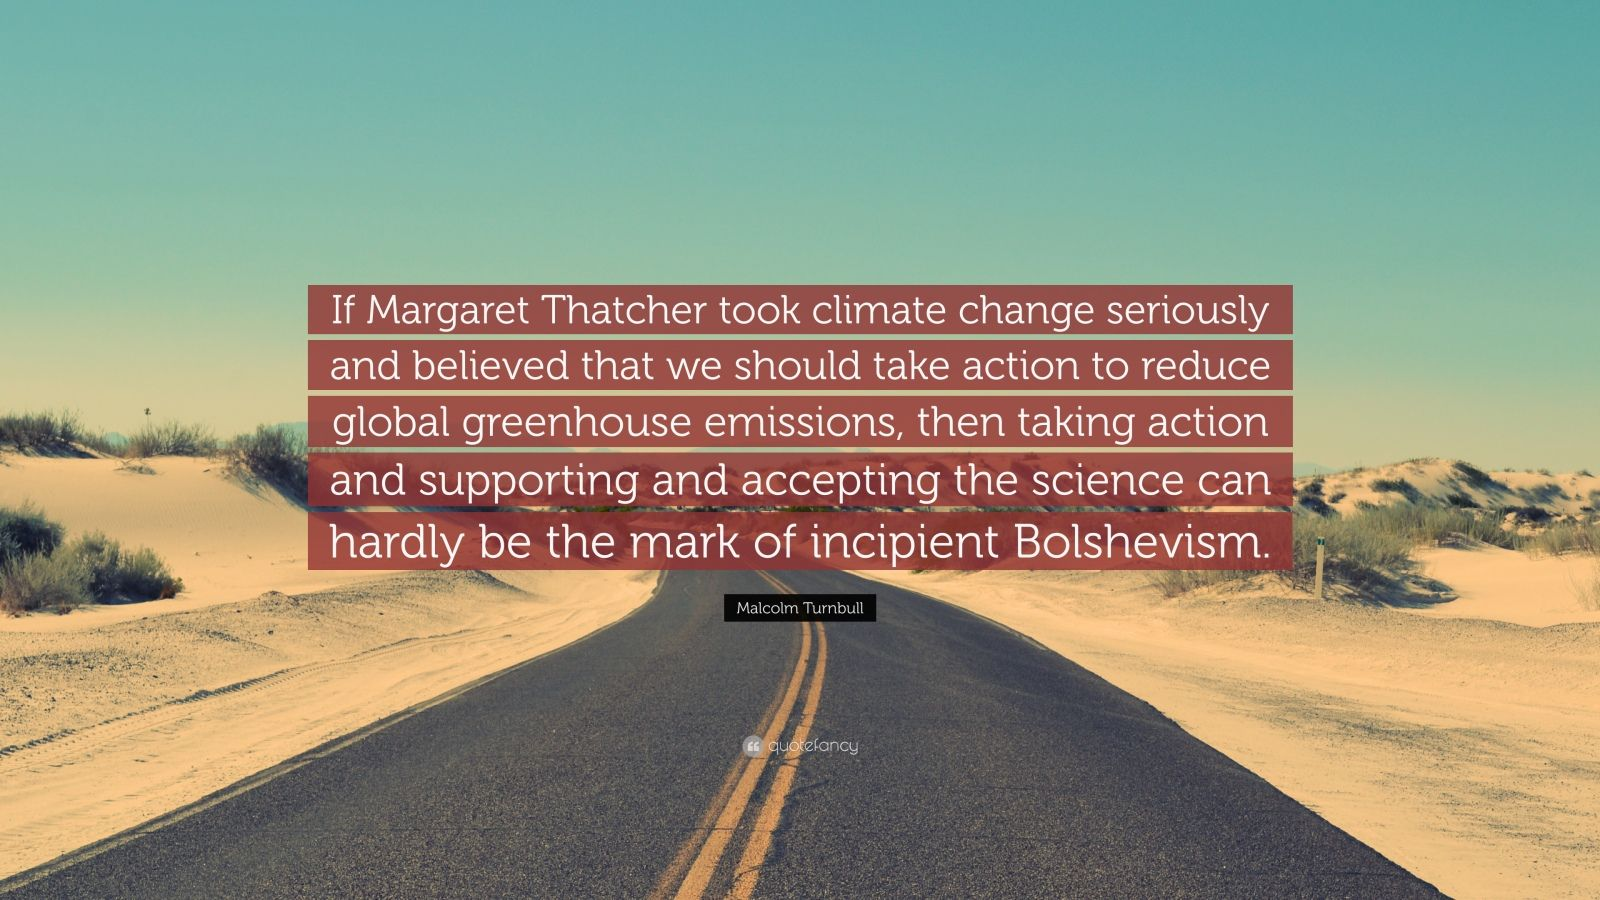 """Malcolm Turnbull Quote: """"If Margaret Thatcher took climate change seriously and believed that we should take action to reduce global greenhouse emissions, then taking action and supporting and accepting the science can hardly be the mark of incipient Bolshevism."""""""